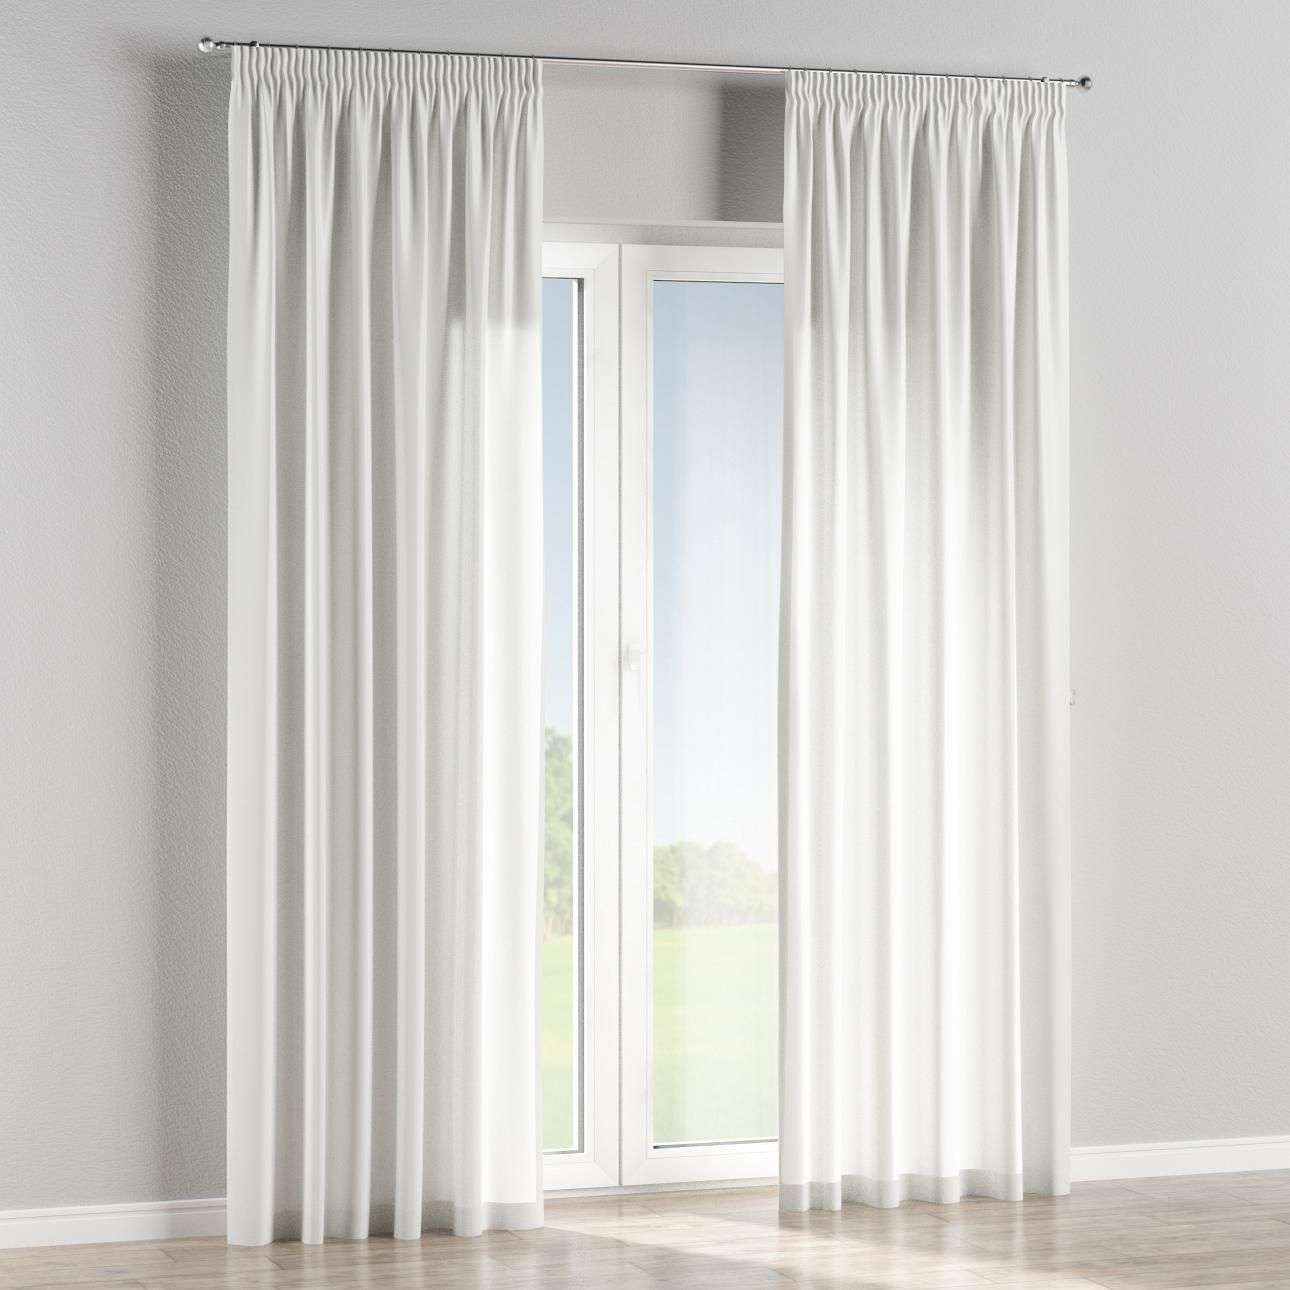 Pencil pleat curtains in collection Rustica, fabric: 138-13